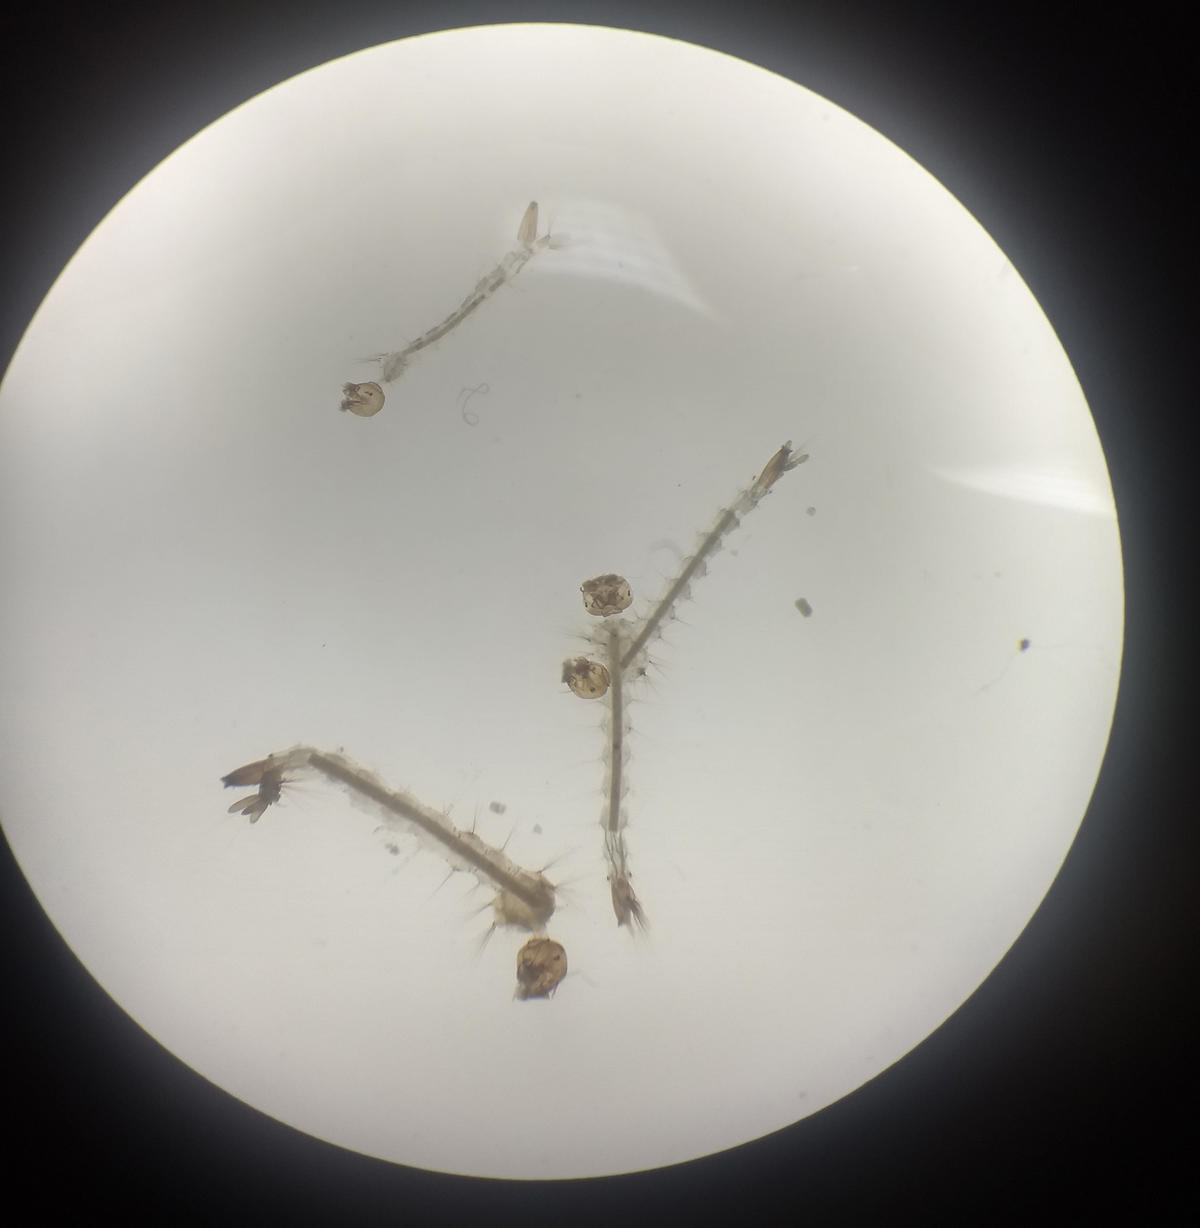 Mosquito larvae under a light microscope. cc Emmanuel Kotey.